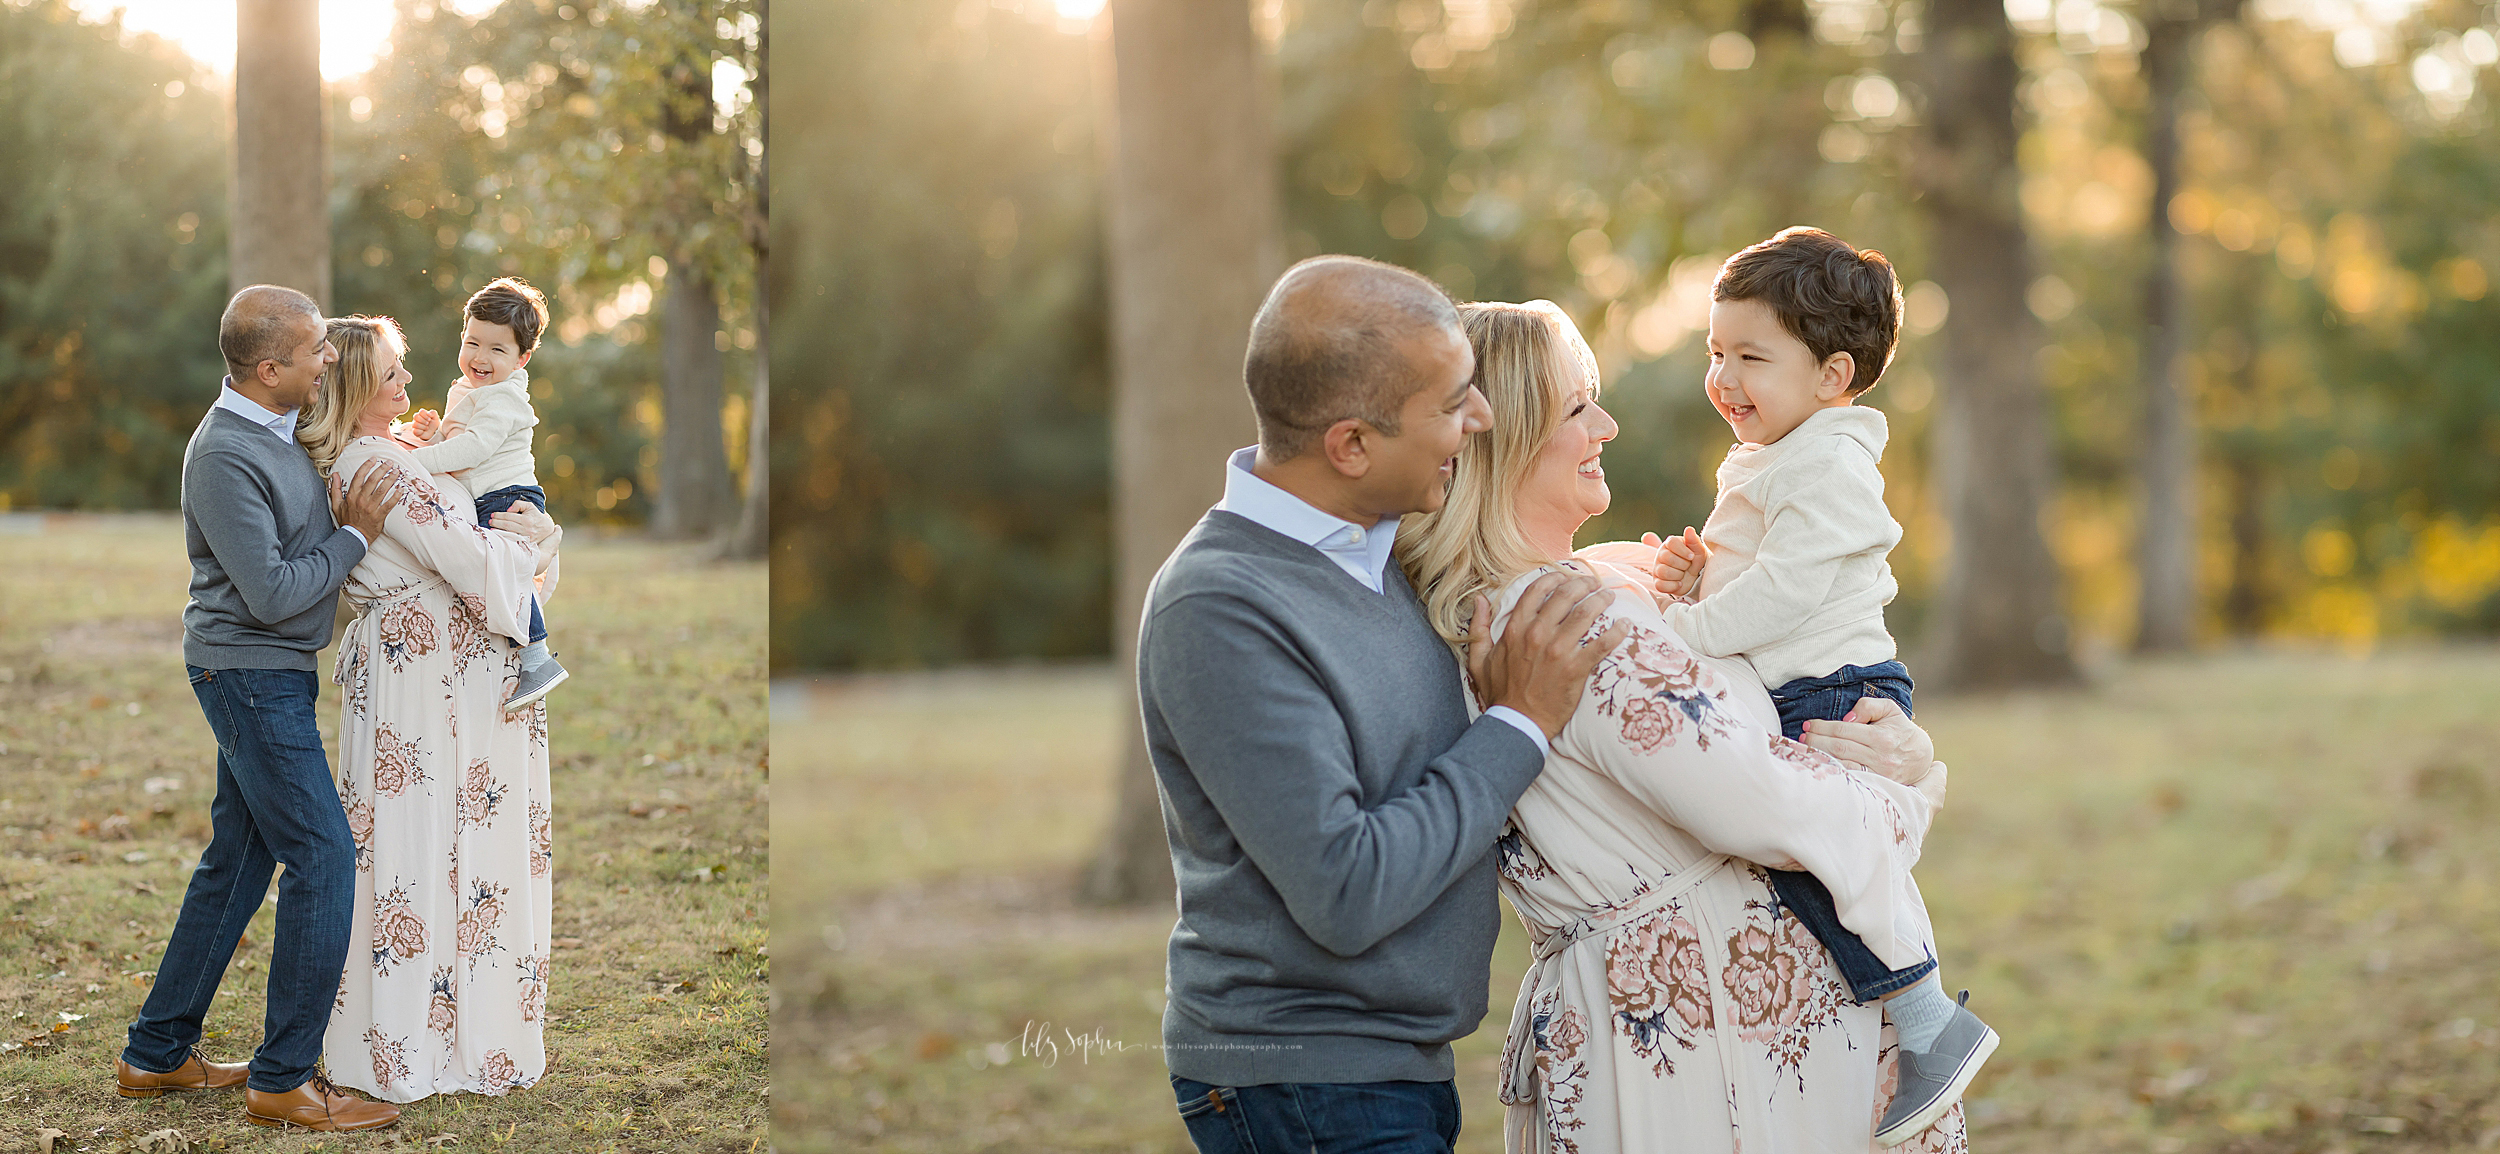 atlanta-midtown-brookhaven-decatur-lily-sophia-photography-photographer-portraits-grant-park-sunset-maternity-expecting-baby-girl-family-toddler-boy-big-brother_0093.jpg